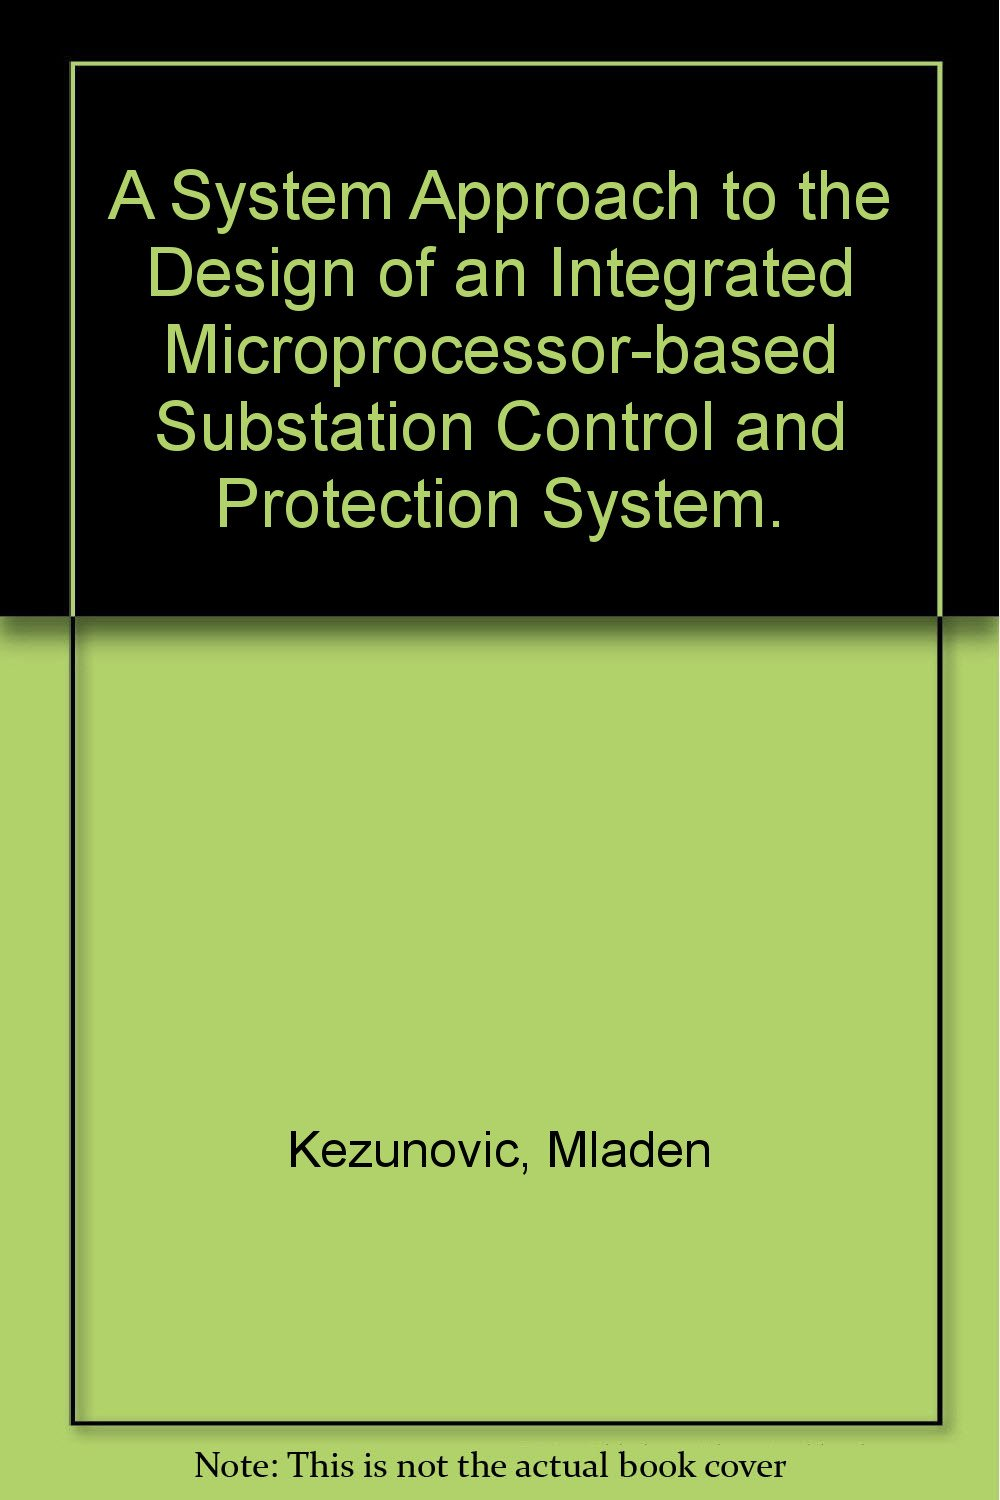 A System Approach to the Design of an Integrated Microprocessor